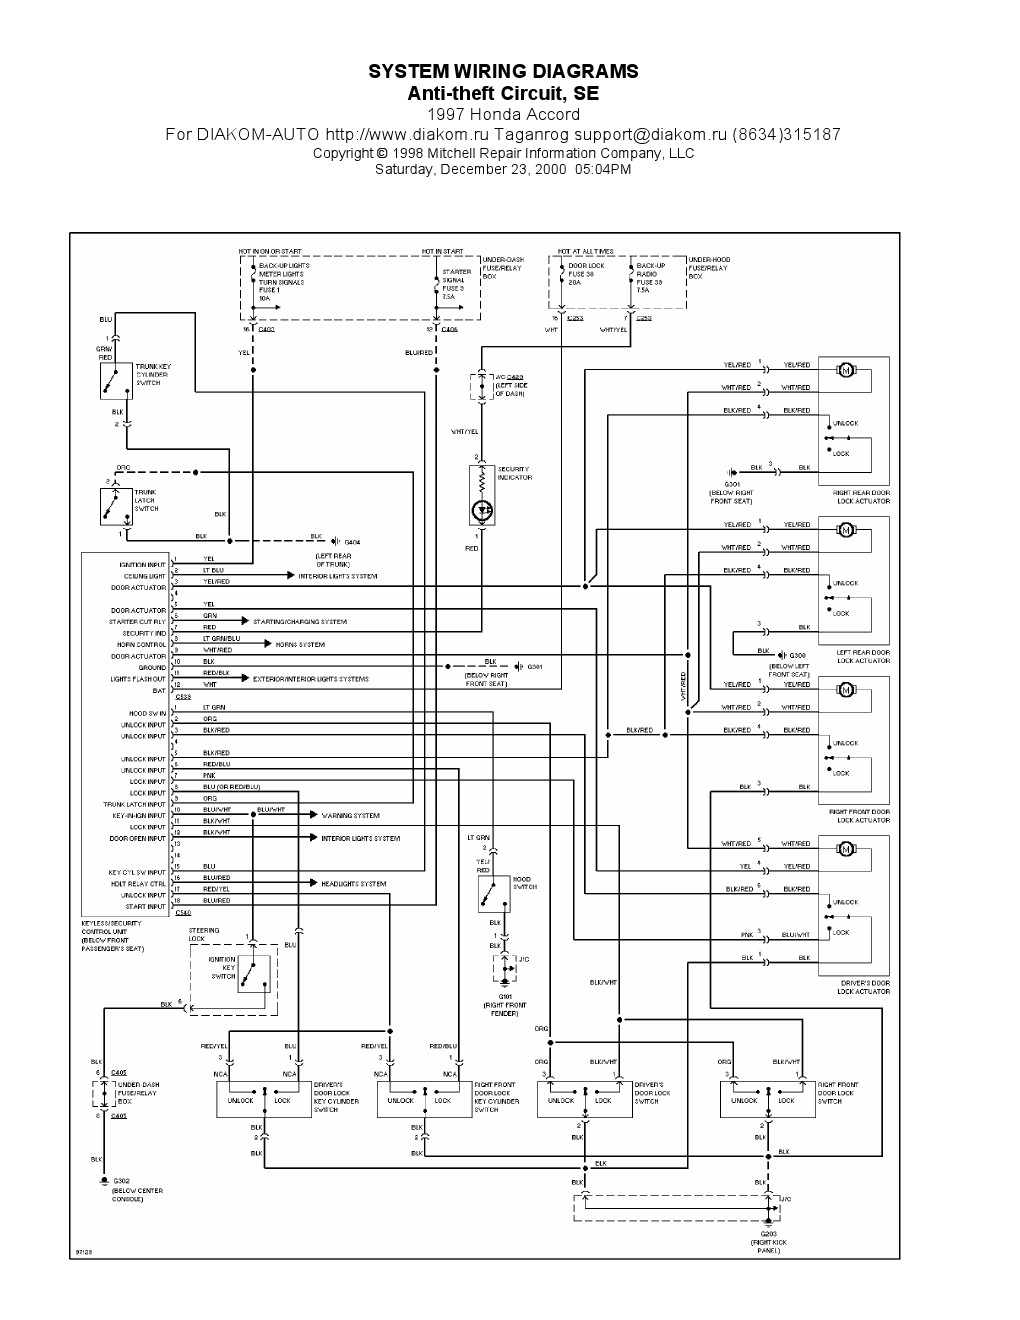 Honda Accord Wiring Diagram Pdf Gallery | Wiring Diagram Sample